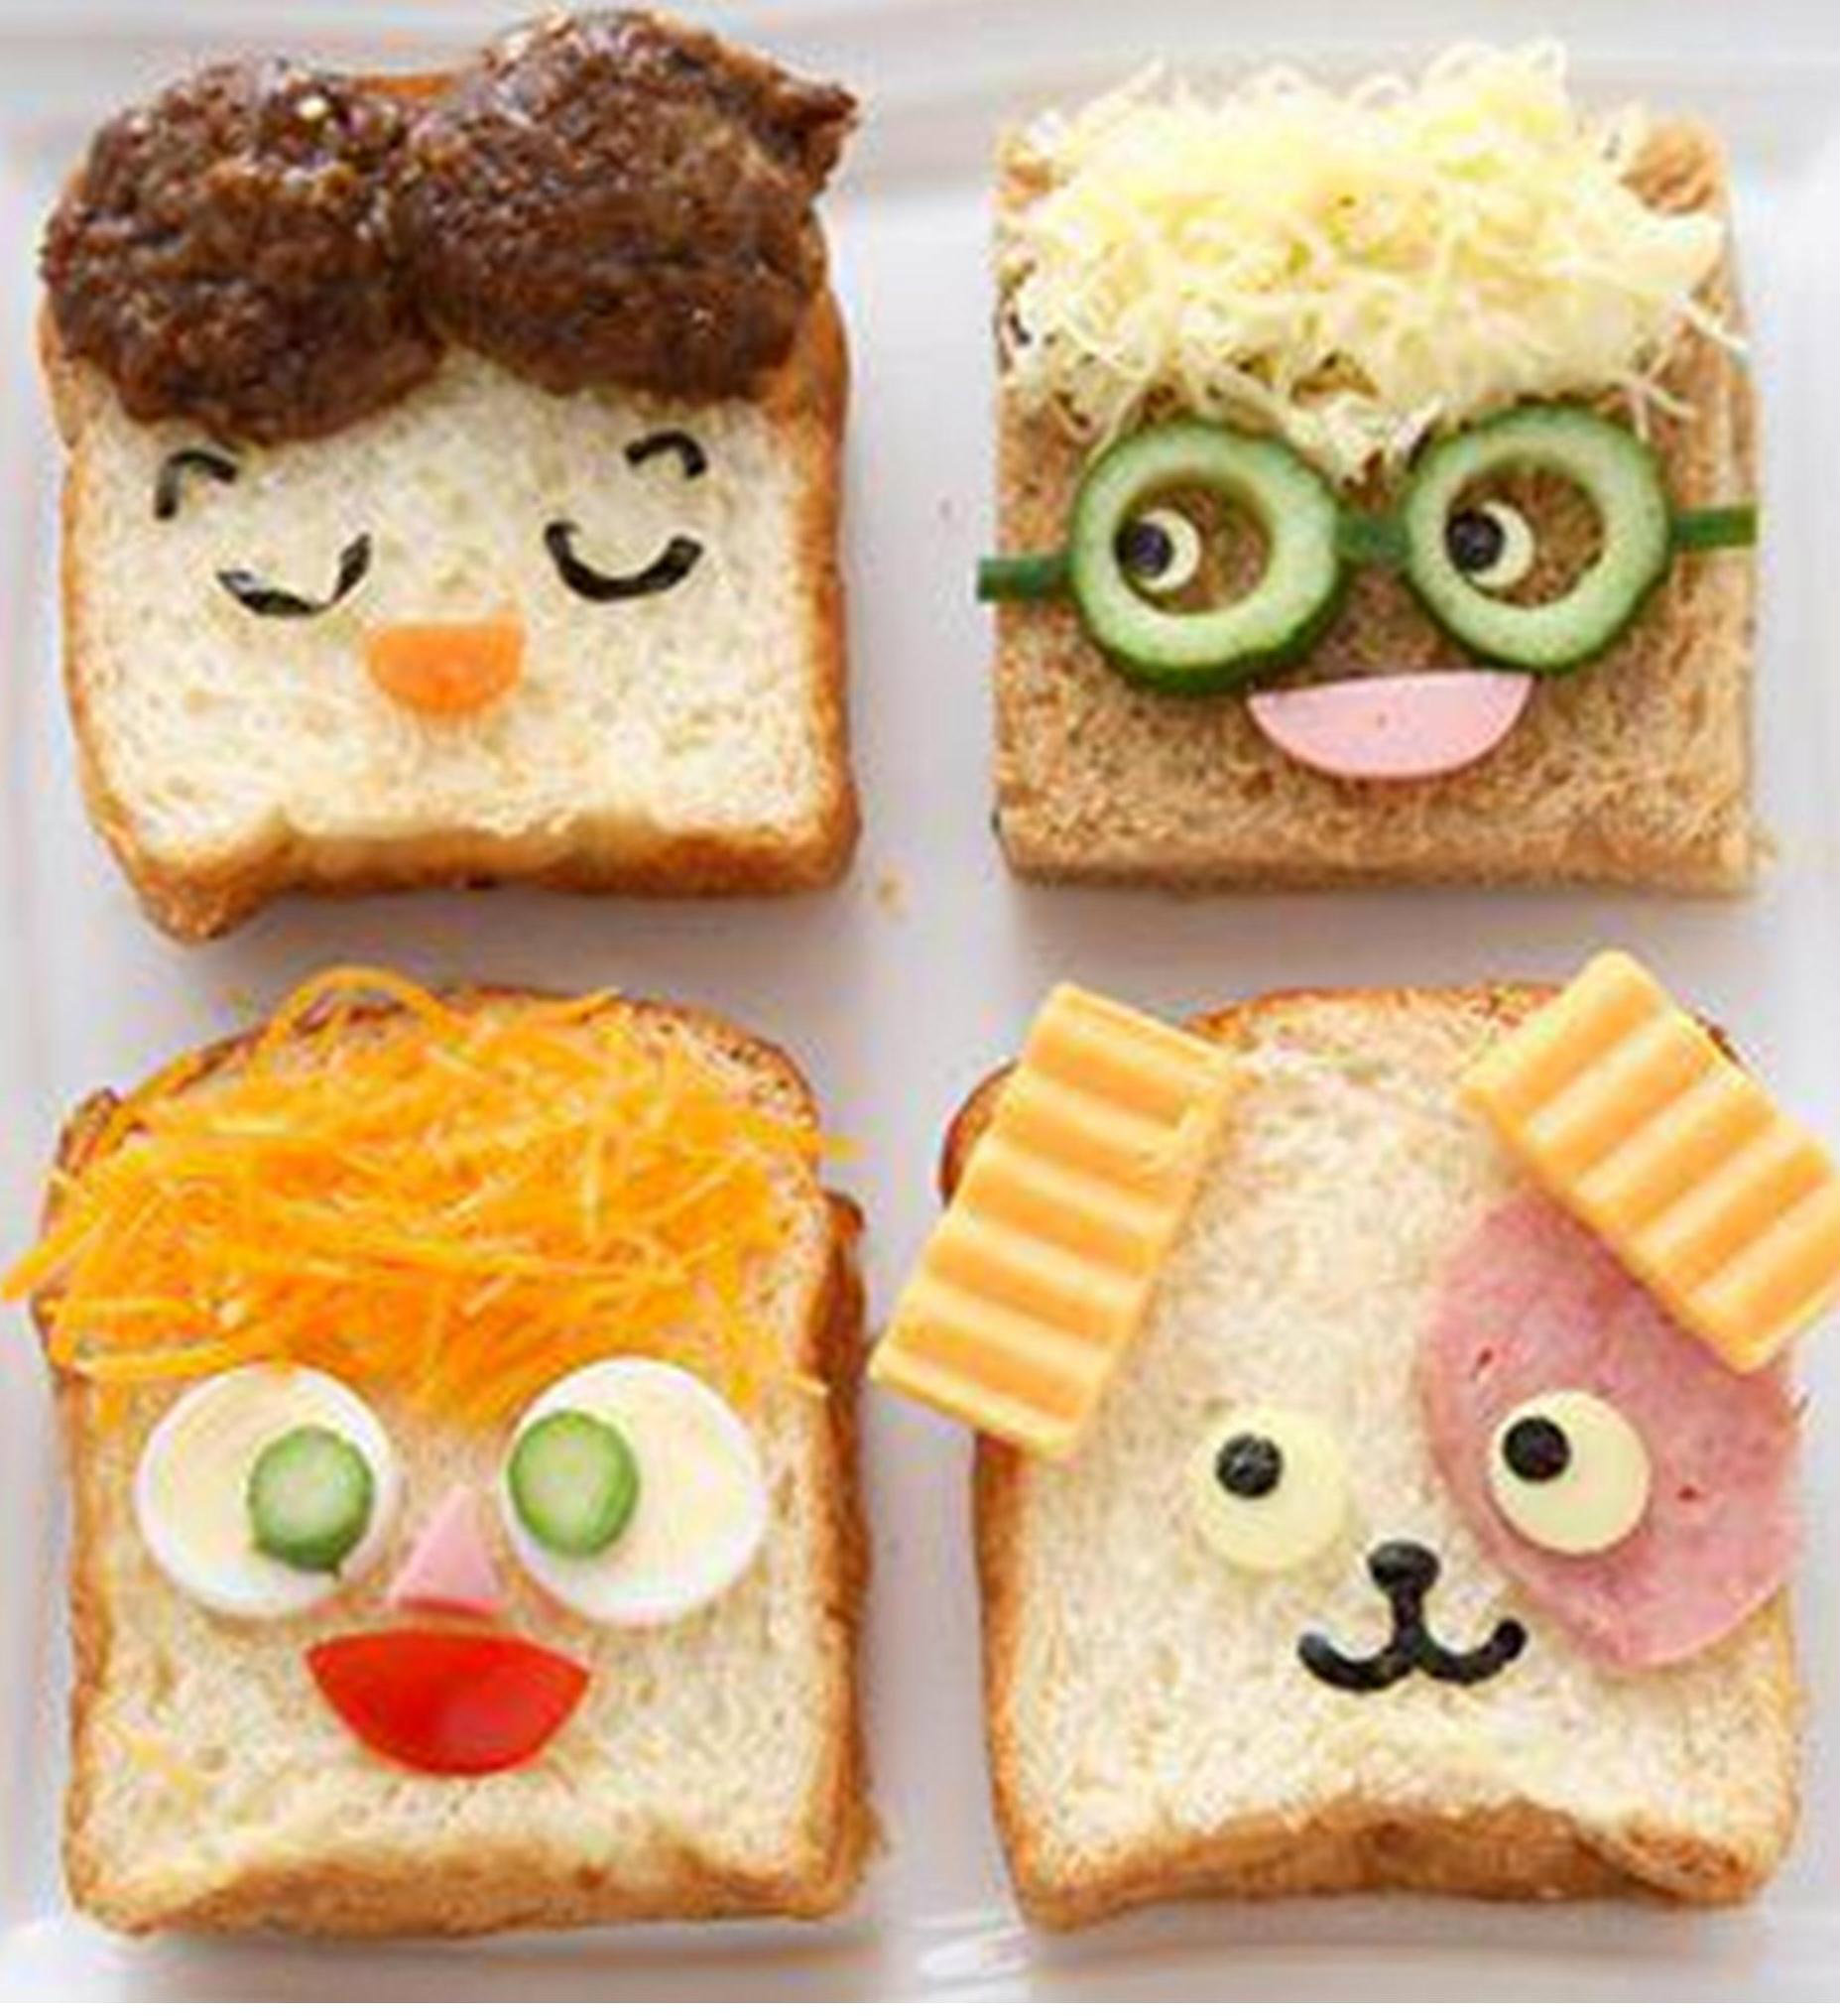 10 amazingly appetising food art designs part 3 tinyme blog for Fun kid food crafts